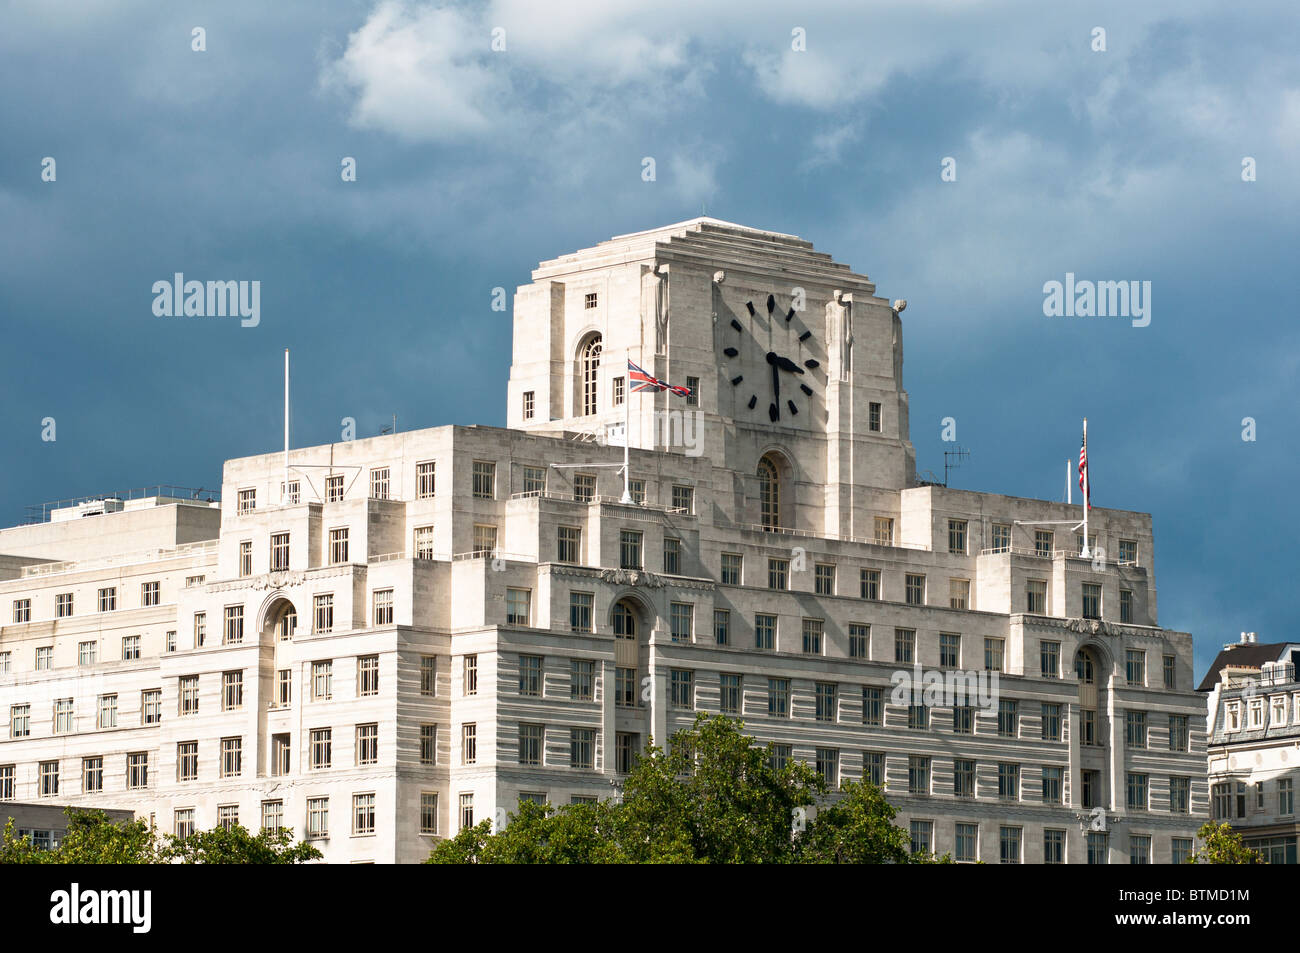 Art Deco Shell Mex Building London Uk Stock Photo Royalty Free Image 3241